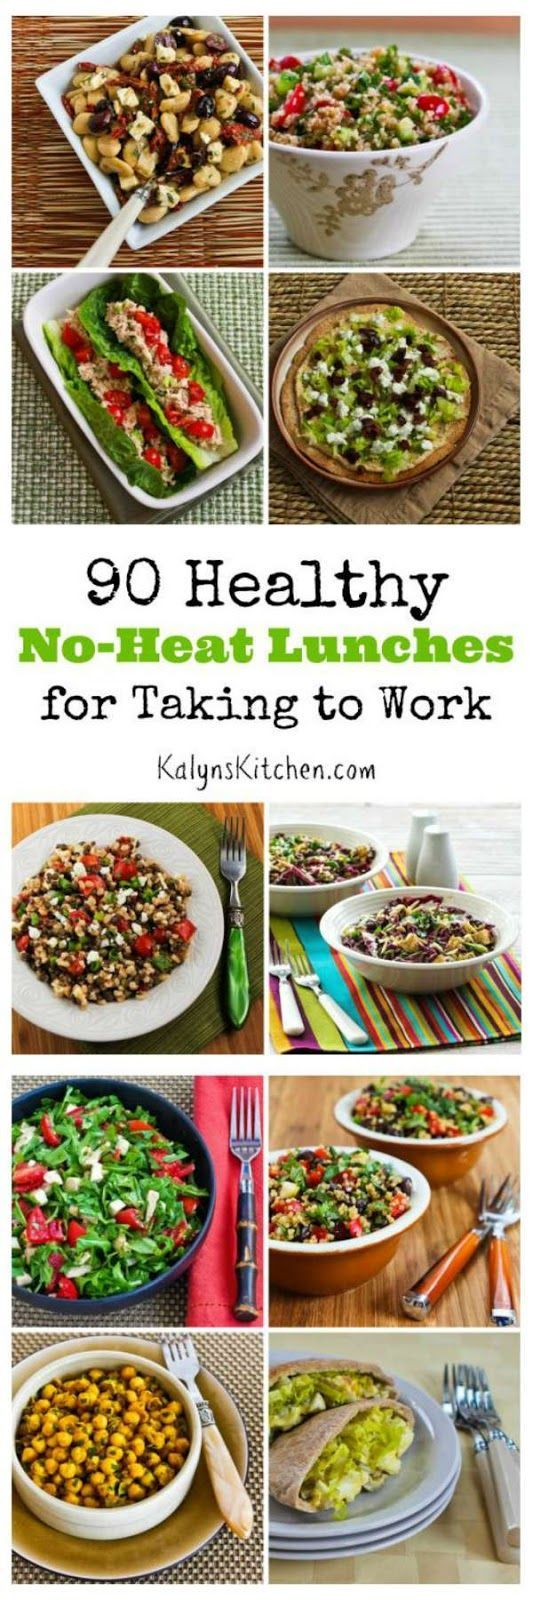 90 Healthy No-Heat Lunches for Taking to Work (Many are Low-Carb and Gluten-Free) | Kalyn's Kitchen®️️